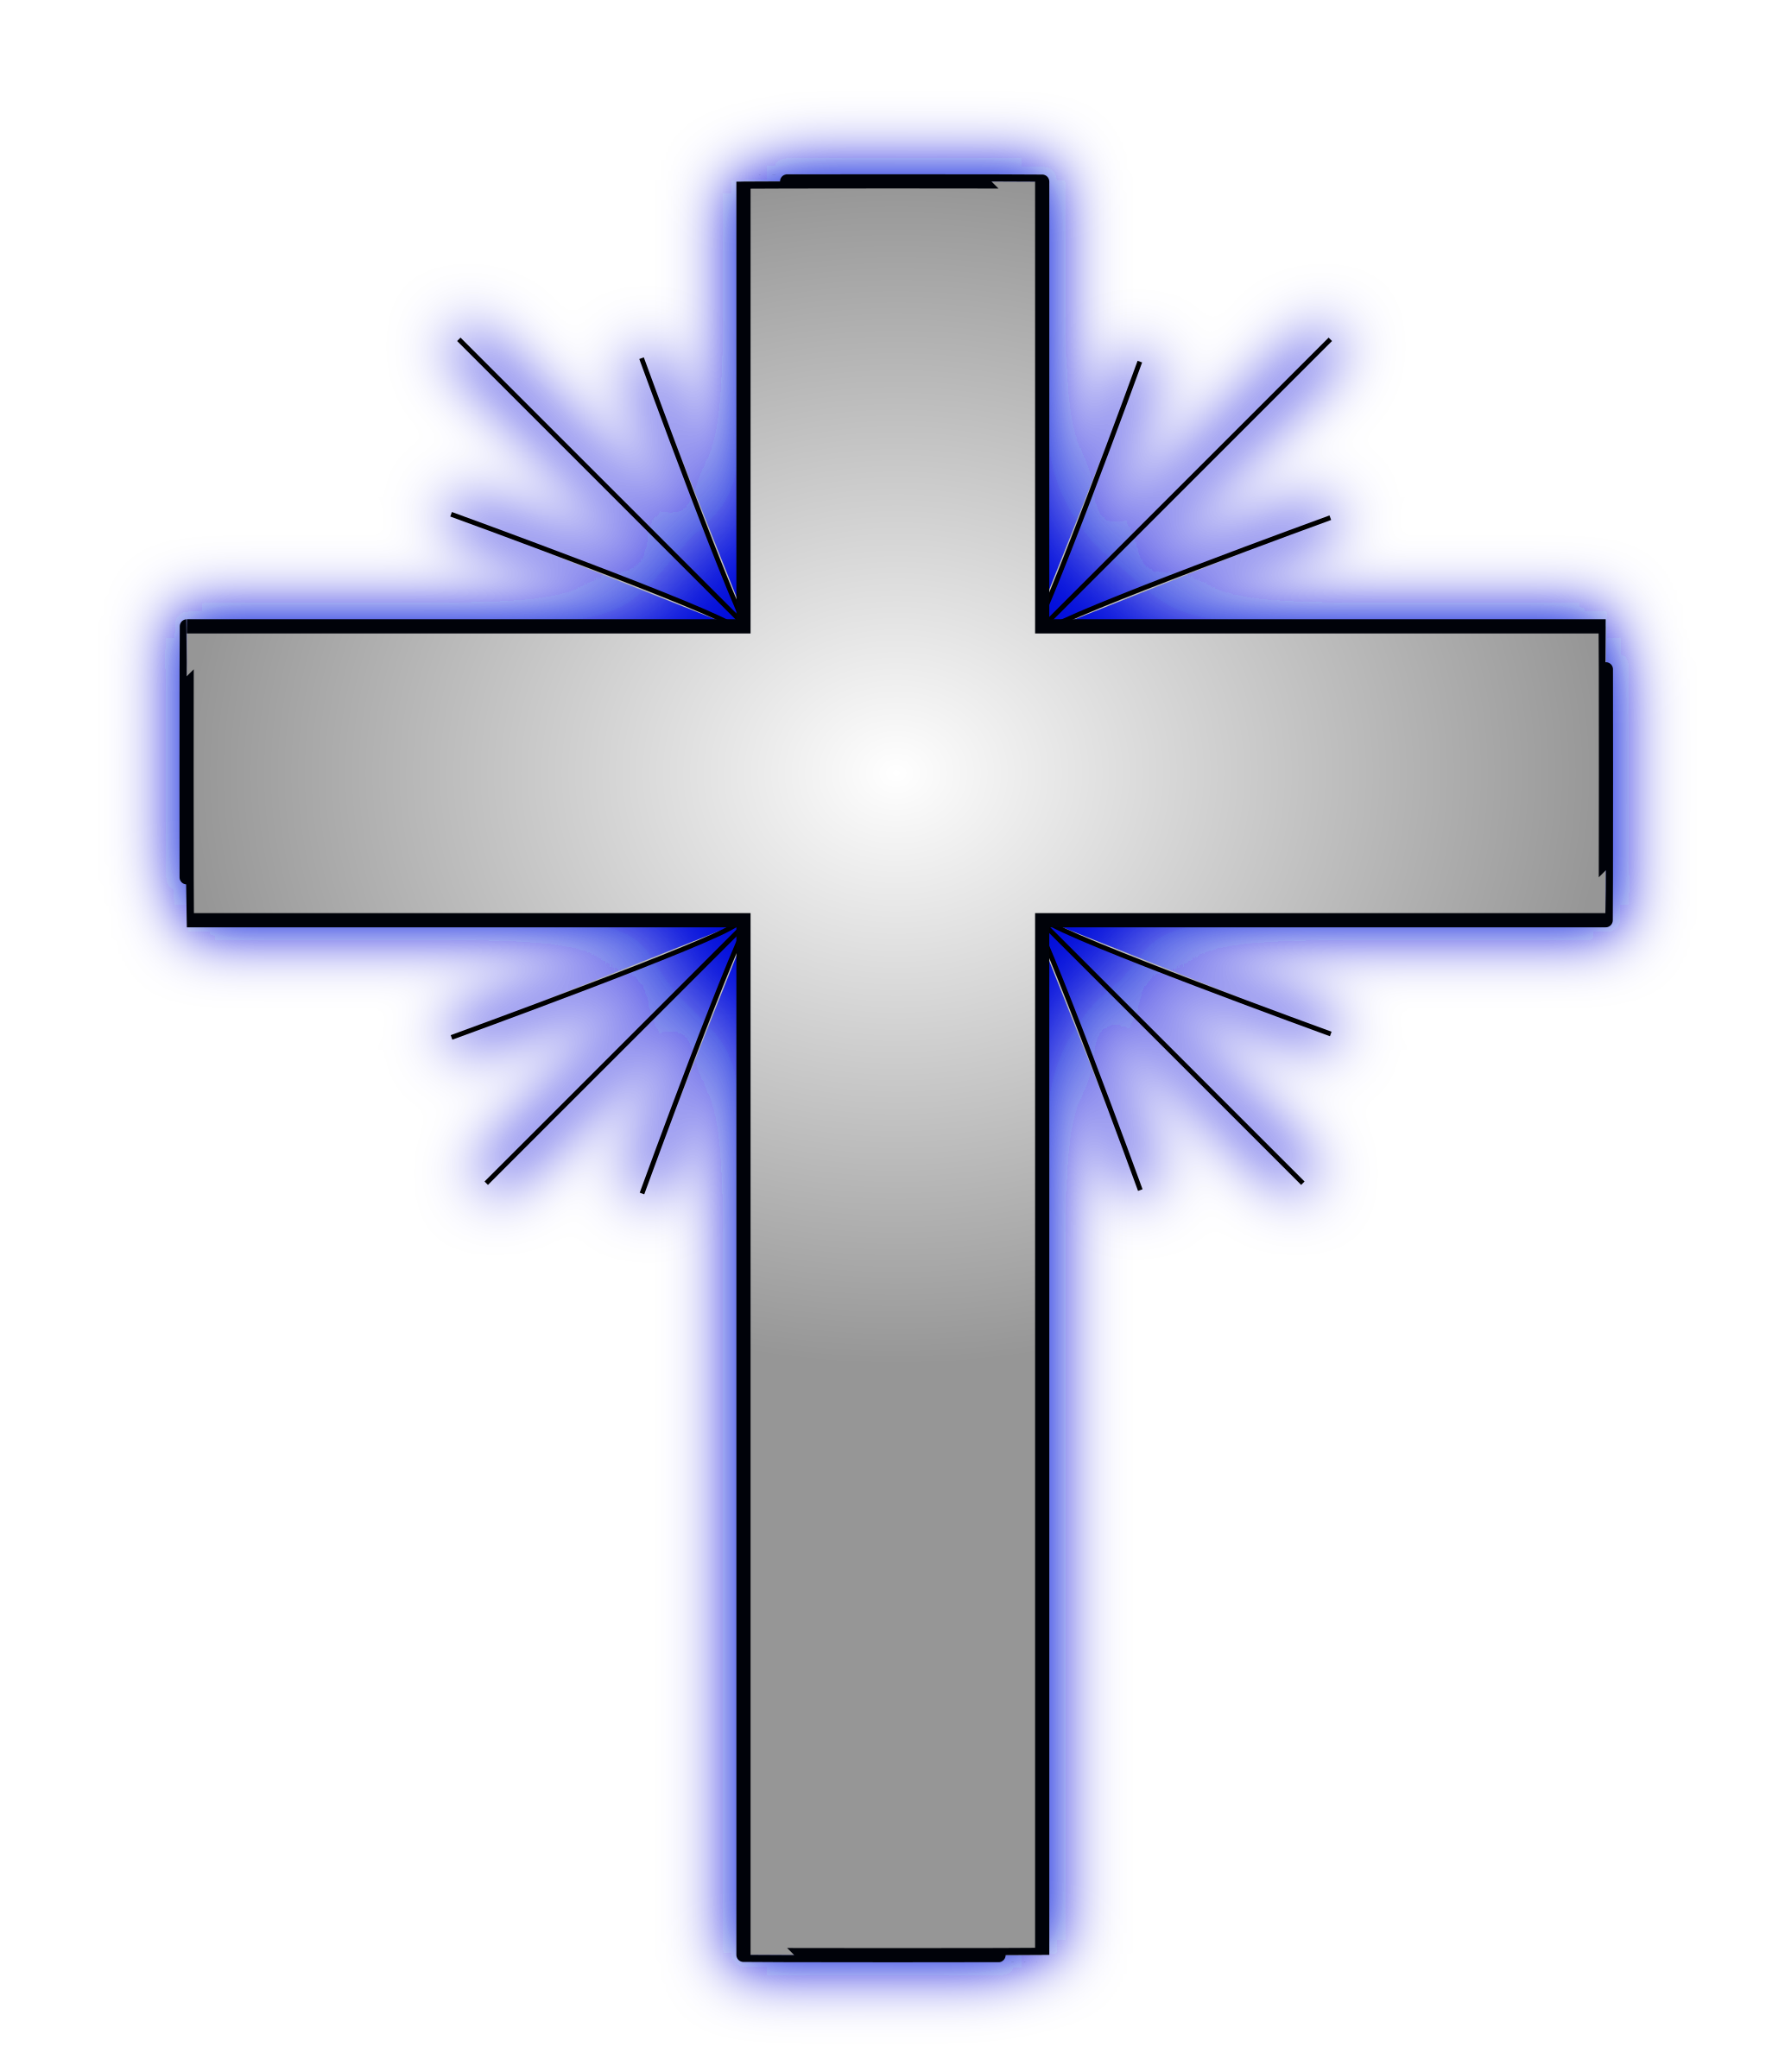 Cross of christ clipart banner black and white Catholic Cross Clipart at GetDrawings.com | Free for personal use ... banner black and white